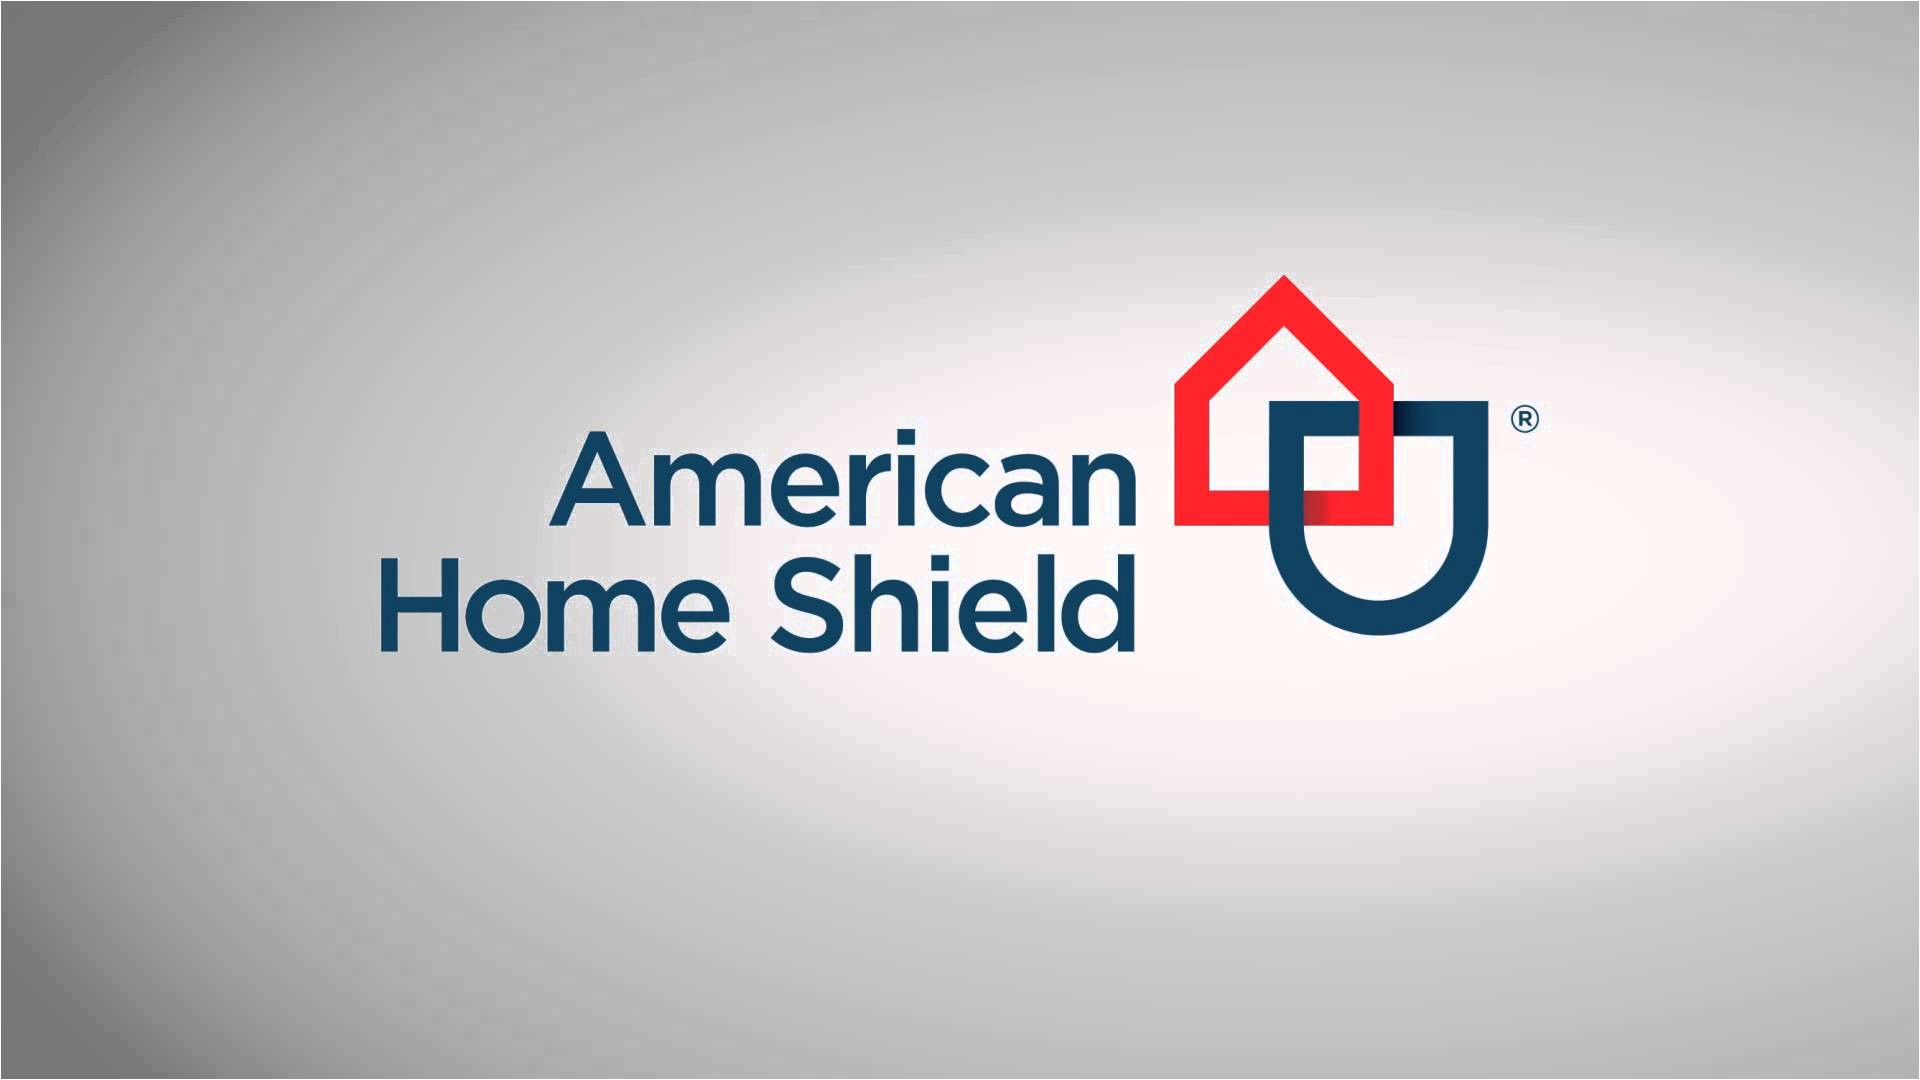 American Home Shield Maintenance Plan Home Appliance Protection and Repair Plans Broken Dryer